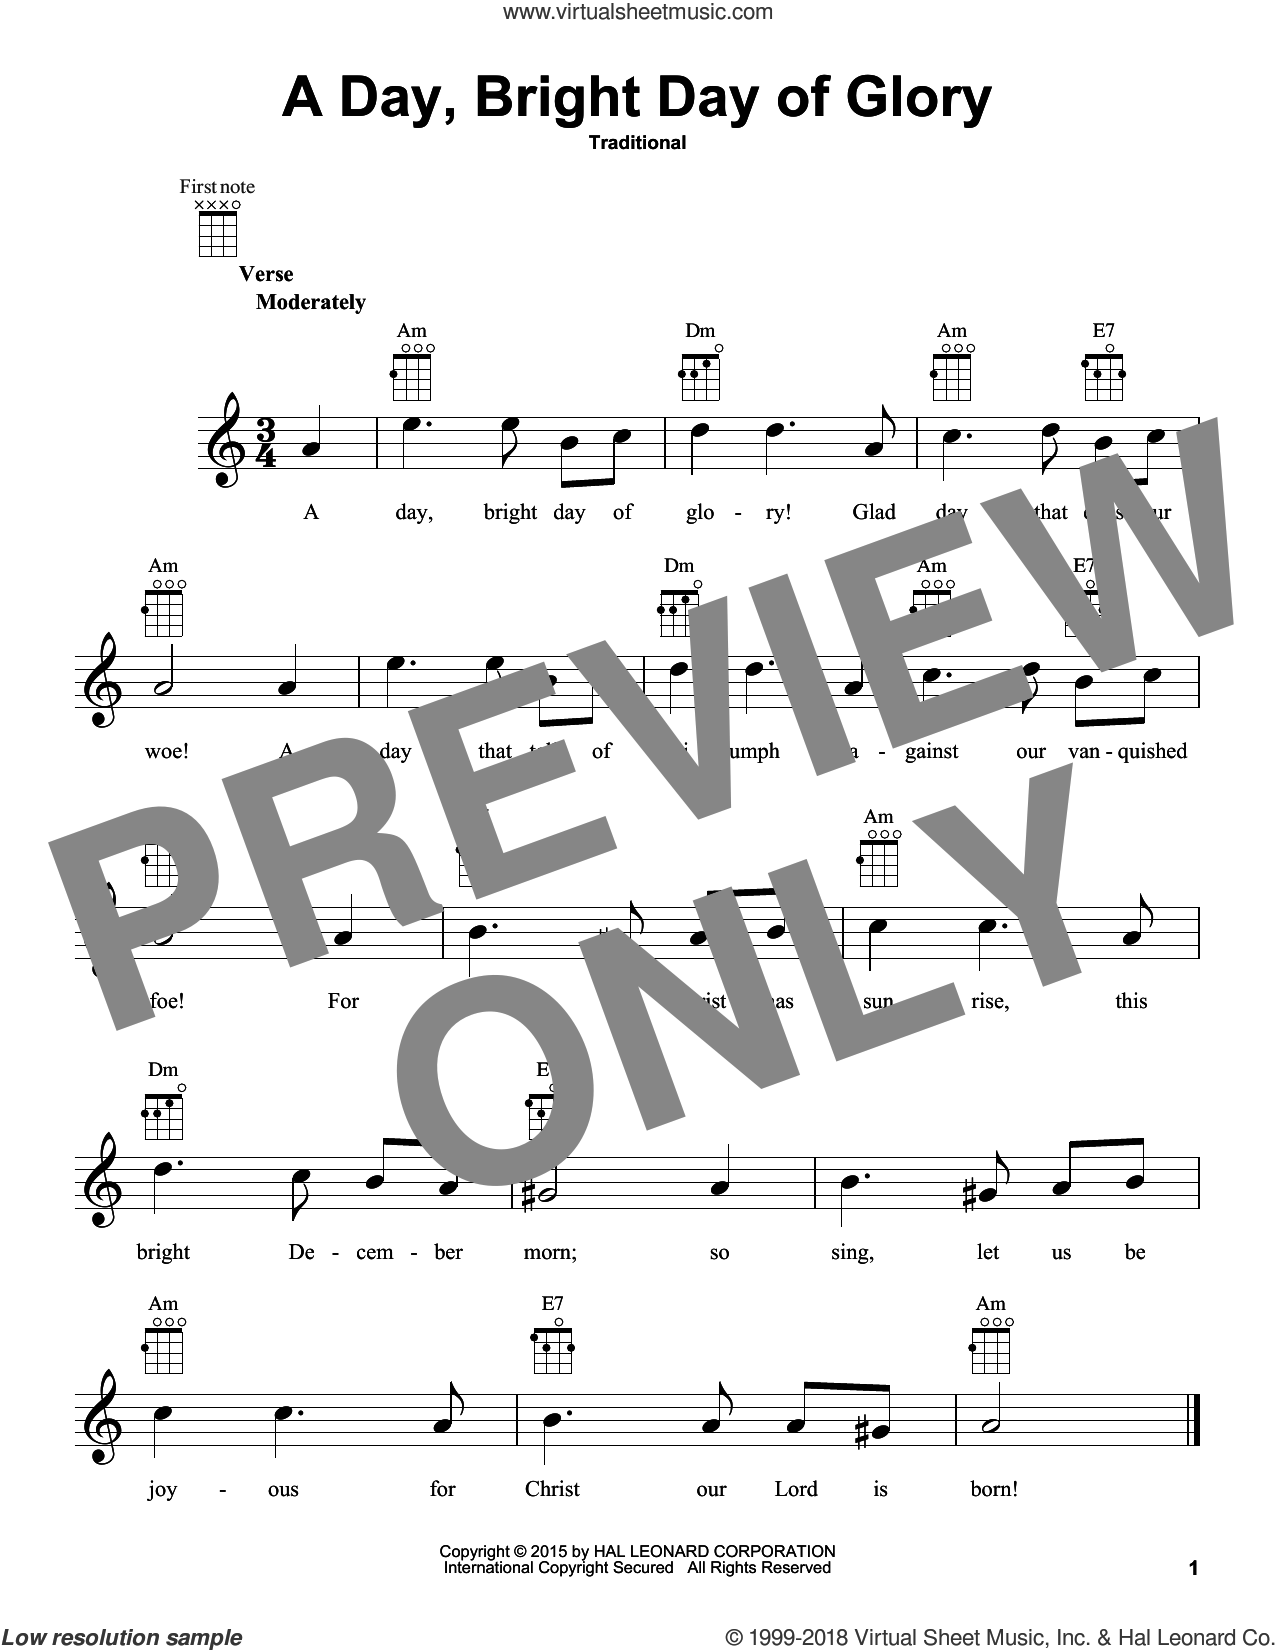 A Day, Bright Day Of Glory sheet music for ukulele, intermediate skill level